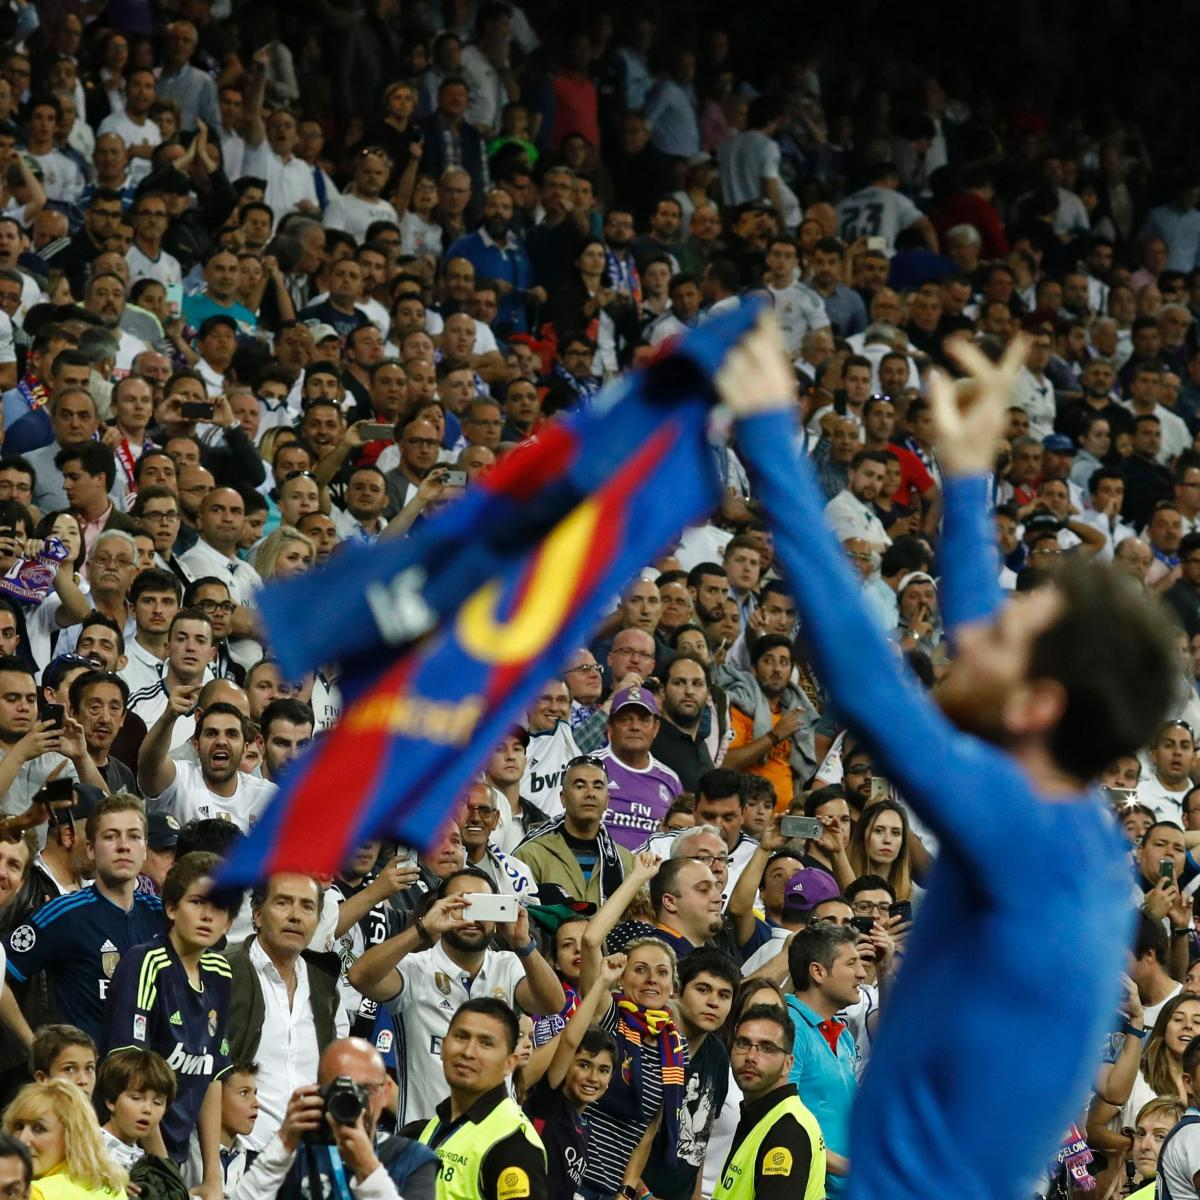 Lionel Messi A Look At The Barcelona Star S Sensational: Real Madrid Strip 357 Season Tickets After Clasico Seats